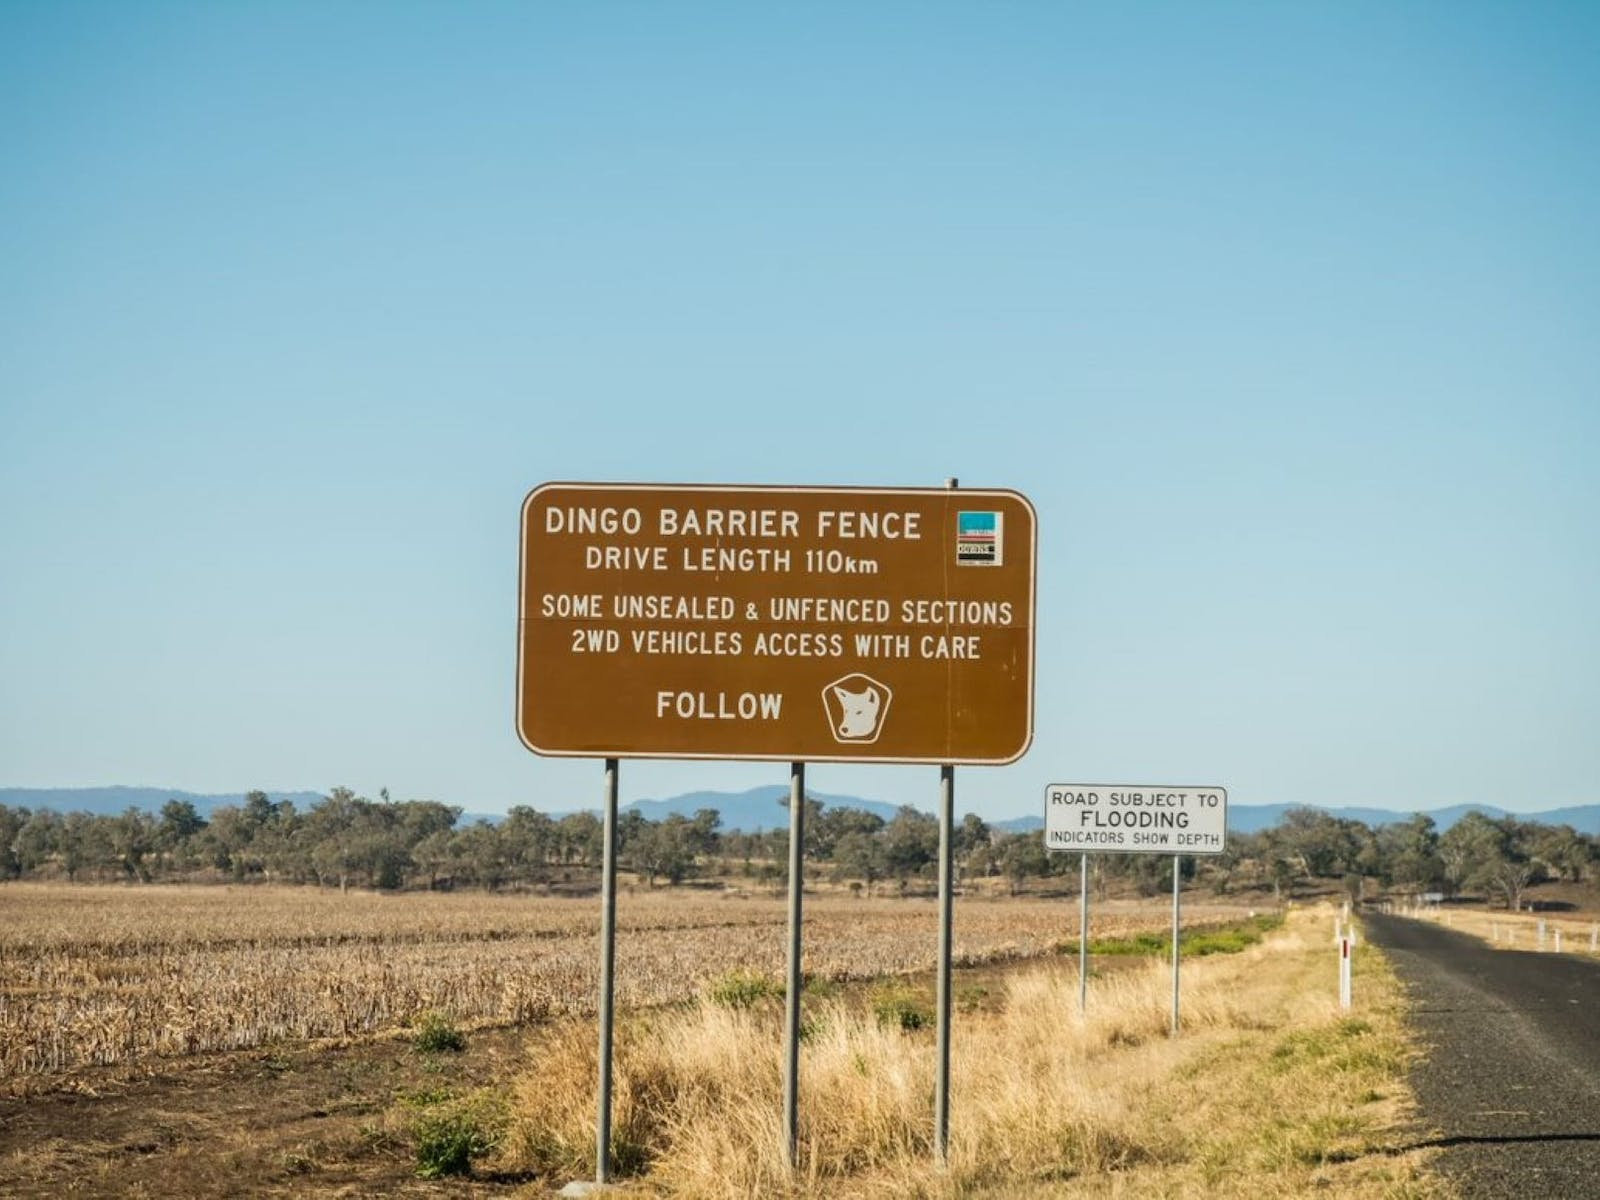 Drive length of the Dingo Barrier Fence - 110 km, combining sealed and unsealed roads.